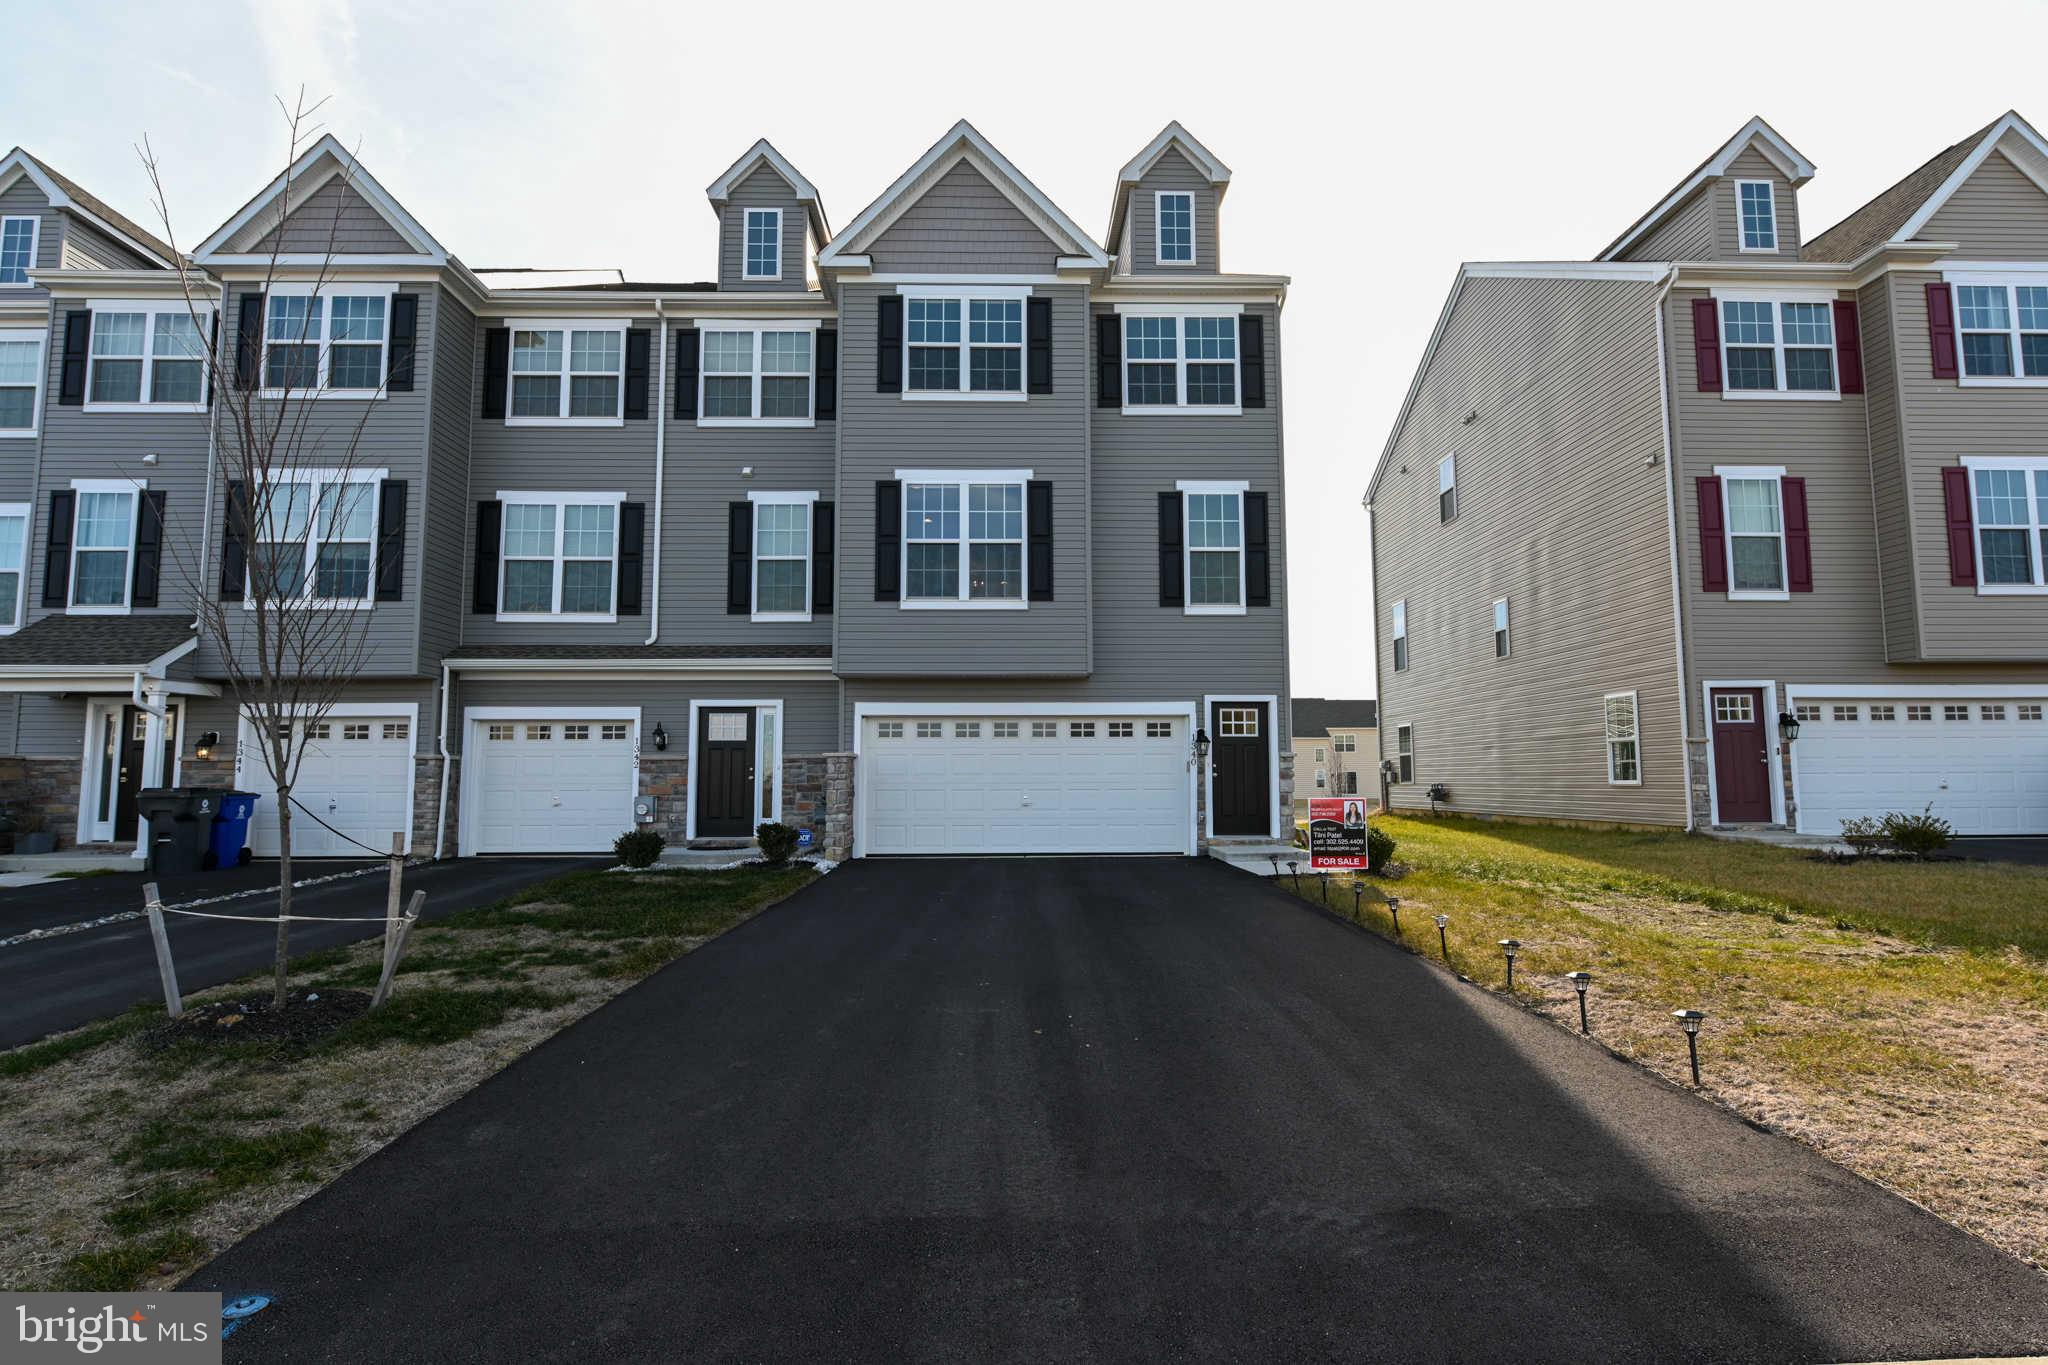 Are you ready to see the home of your dreams? Then come tour this immaculate Massey Elite Townhome by Benchmark Builders - it's only 1-year NEW! Located in the desirable development Ponds of Odessa and within the Appo School District. This approximately 2,400 square feet move-in ready, end-unit Townhome offers 3-bedrooms, 2.5 bath, and a 2-car garage. Additional features include a den with rough-ins for a future full bath, granite countertops and stainless steel appliances in the kitchen, hardwood foyer, and deluxe master bath. GET INTO THIS NEW CONSTRUCTION HOME WITHOUT THE WAIT! Come tour this beauty Today!